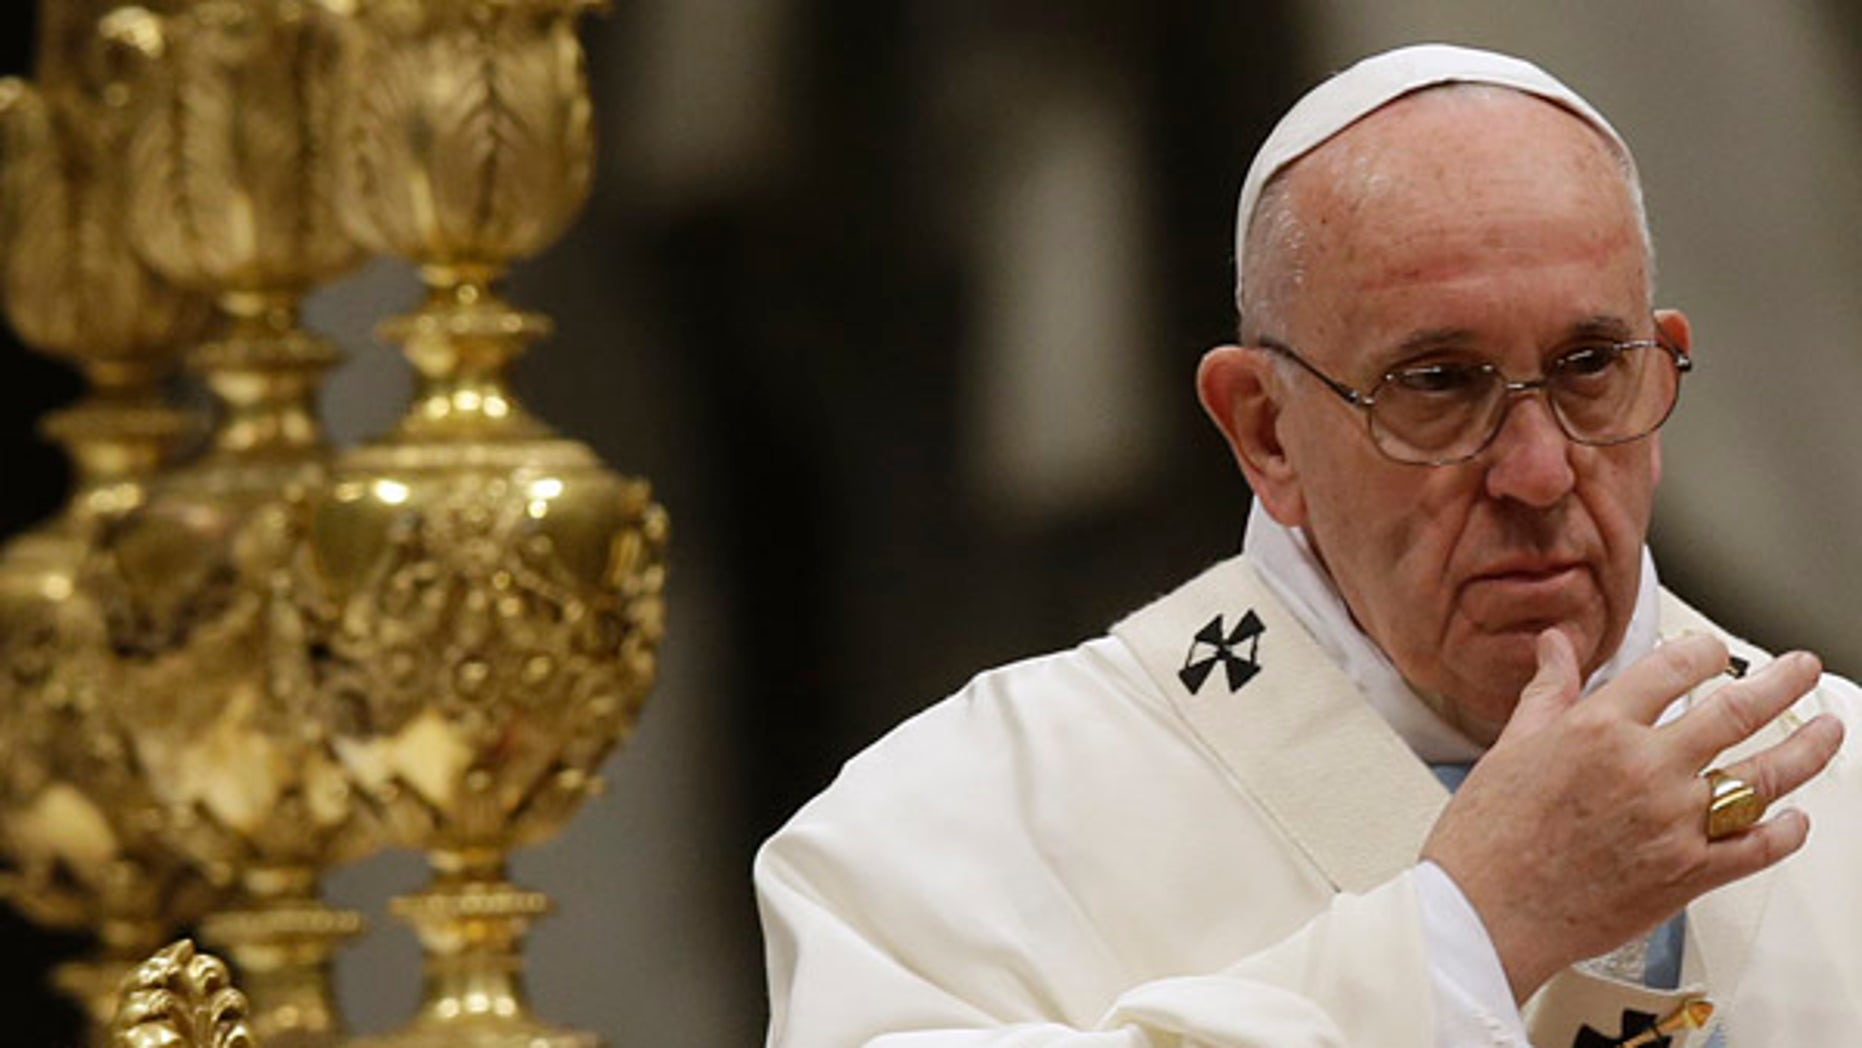 Jan. 1, 2016: Pope Francis makes the sign of the cross as he celebrates a New Year mass in St. Peter's Basilica at the Vatican. (AP)